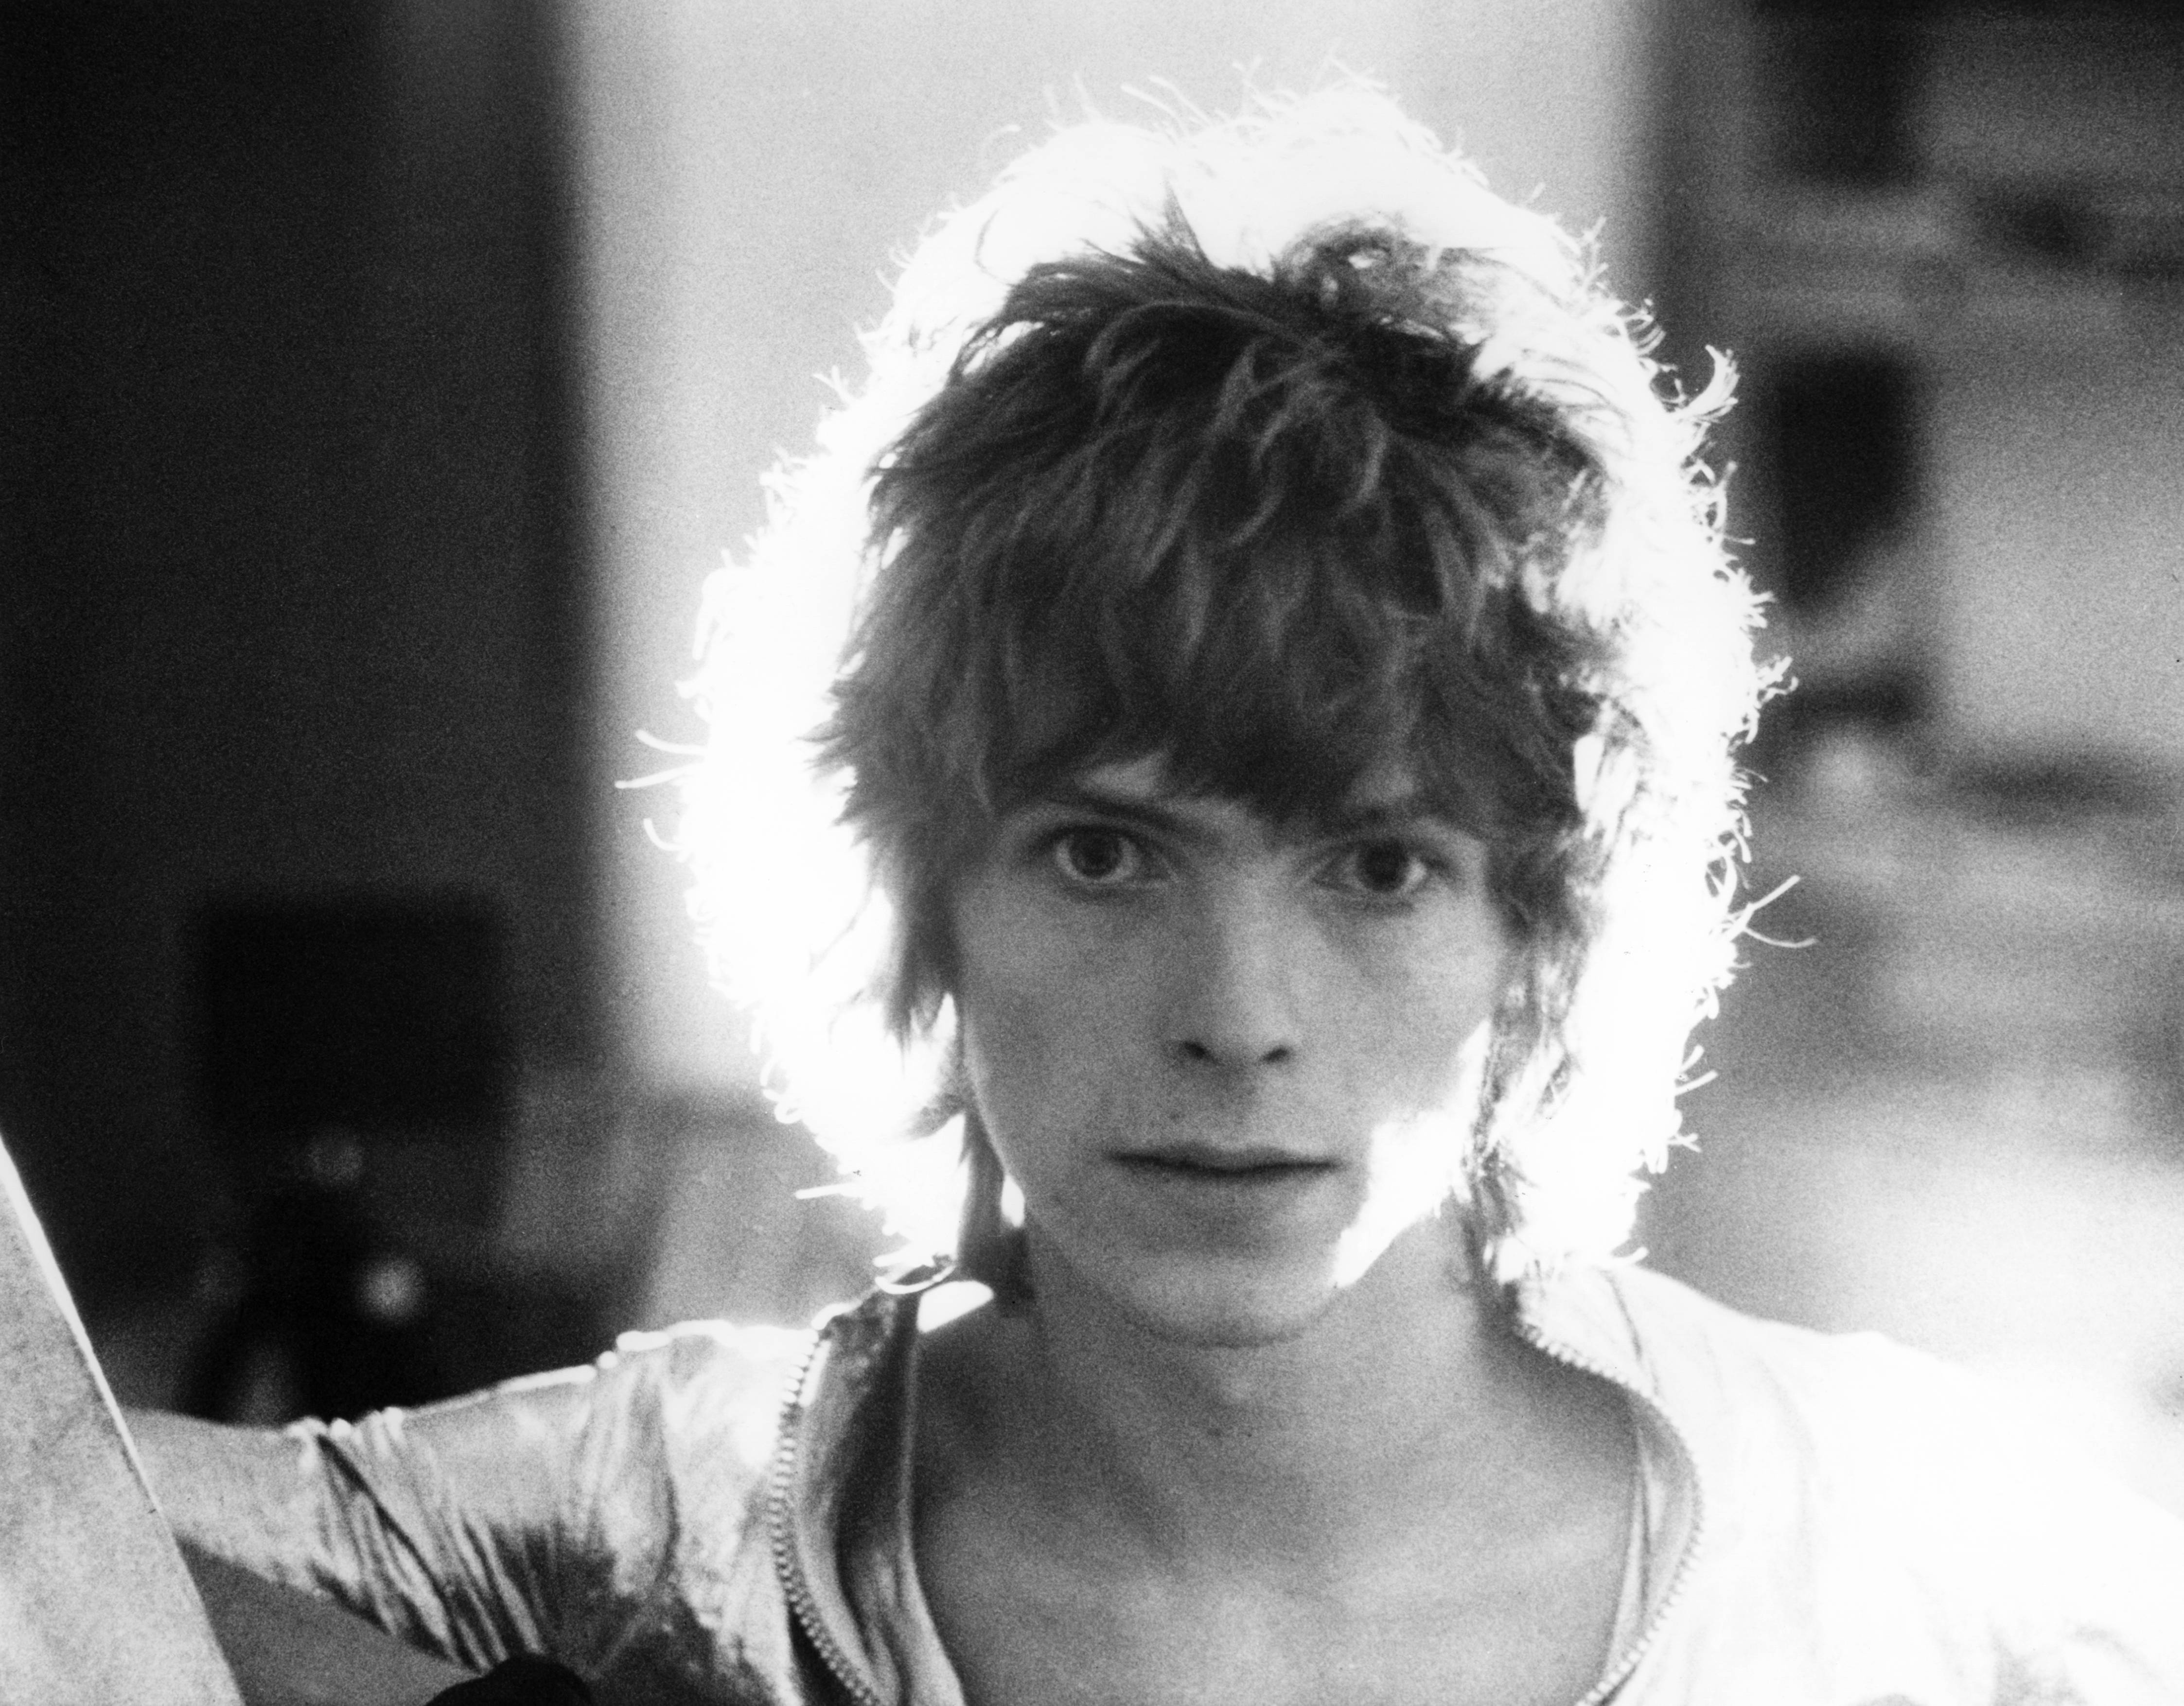 David Bowie to Release Massive Box Set 'Five Years 1969-1973'